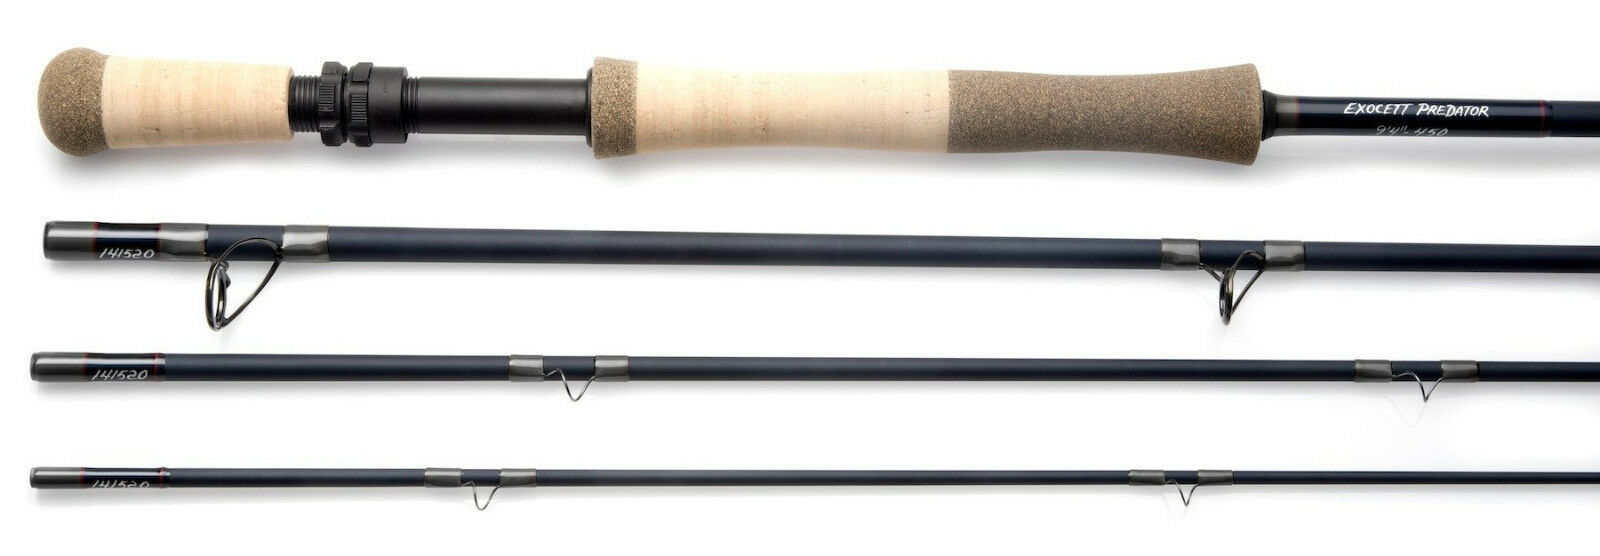 Thomas  and Thomas Exocett Predator Fly Rod -- Streams of Dreams Fly Shop  great offers